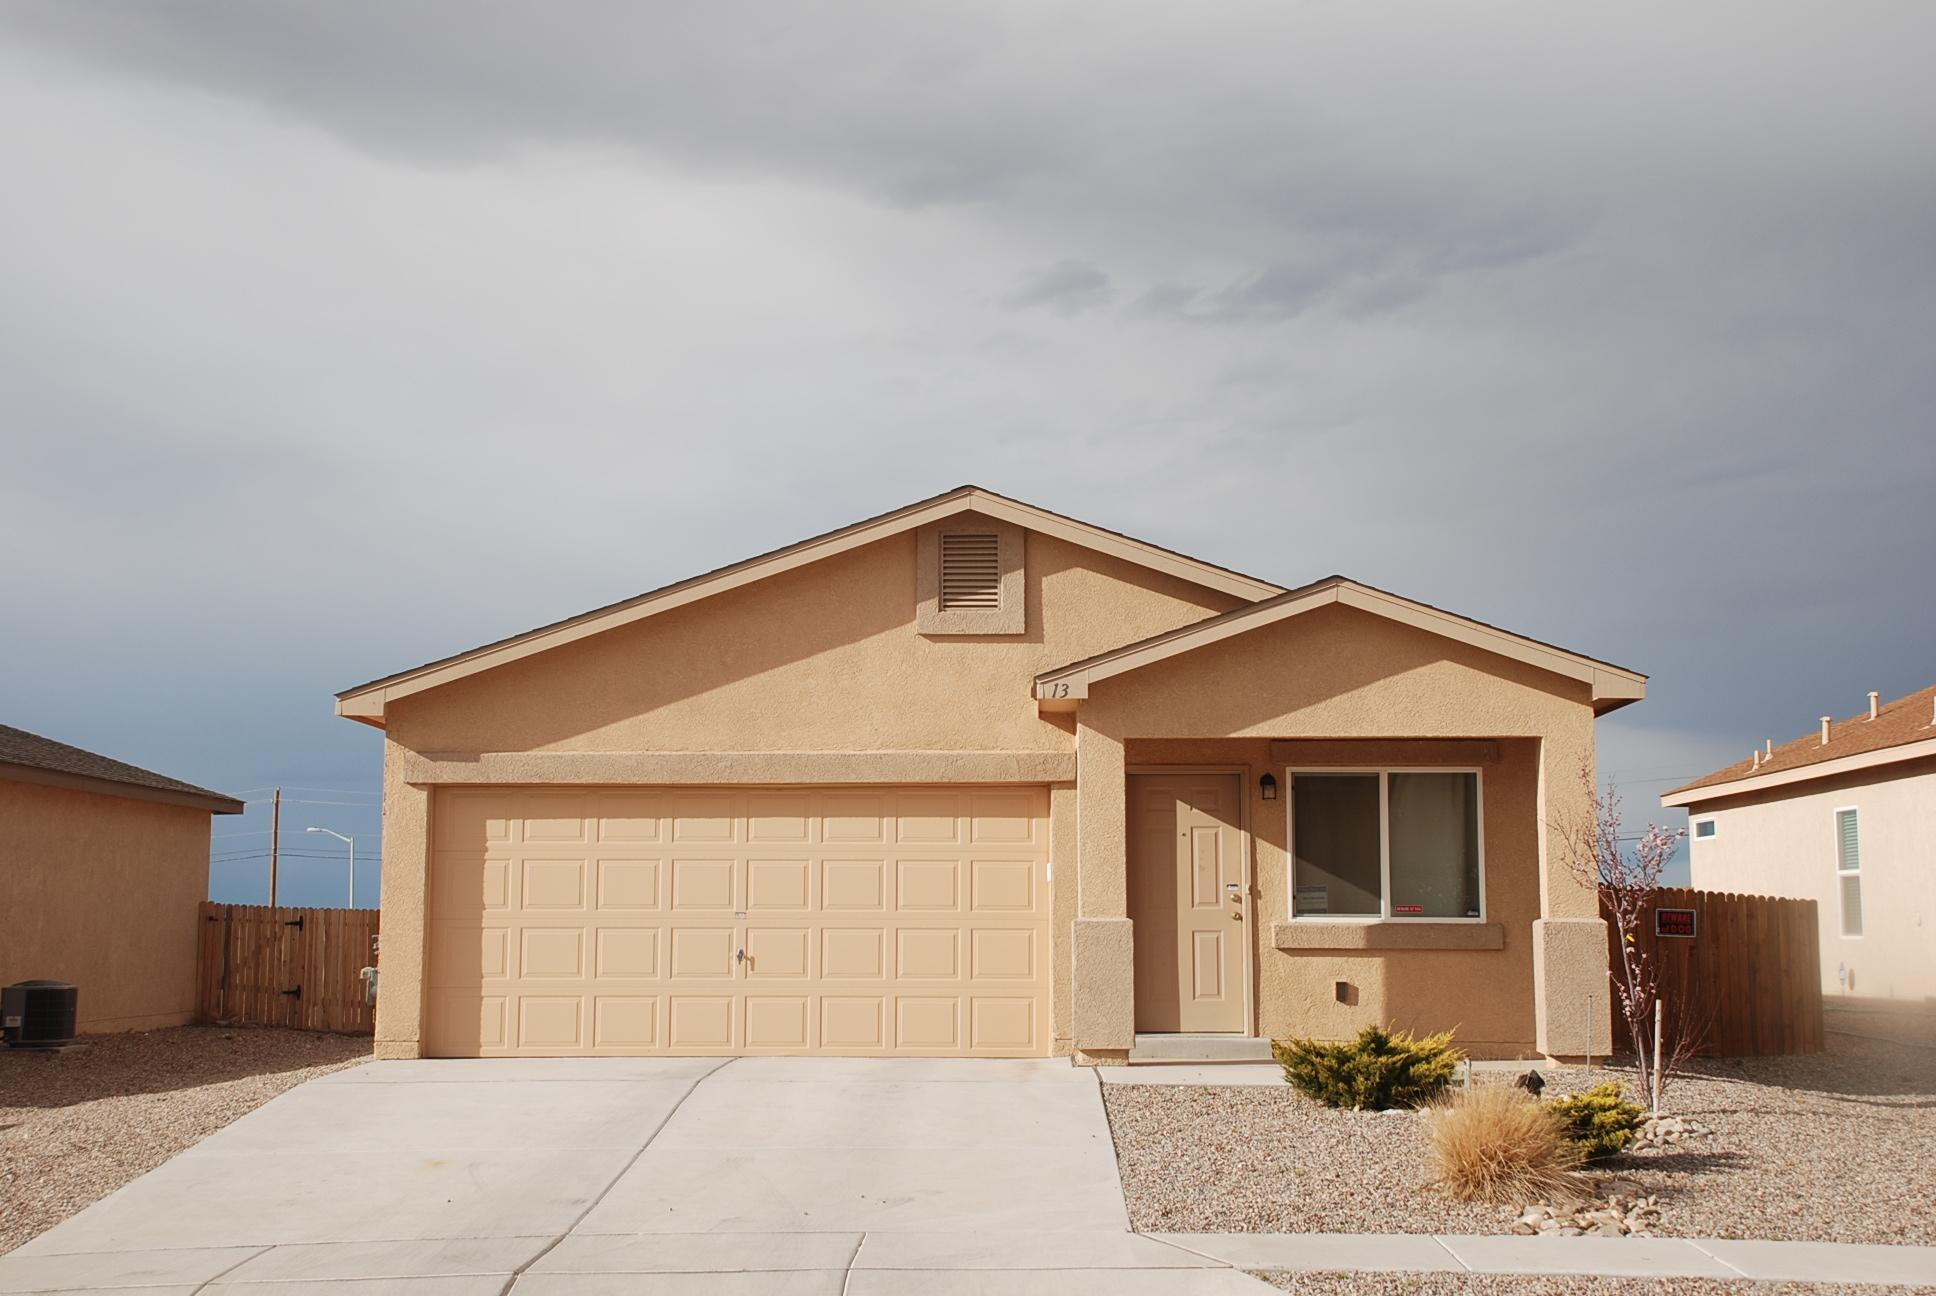 Los Lunas Property for Sale